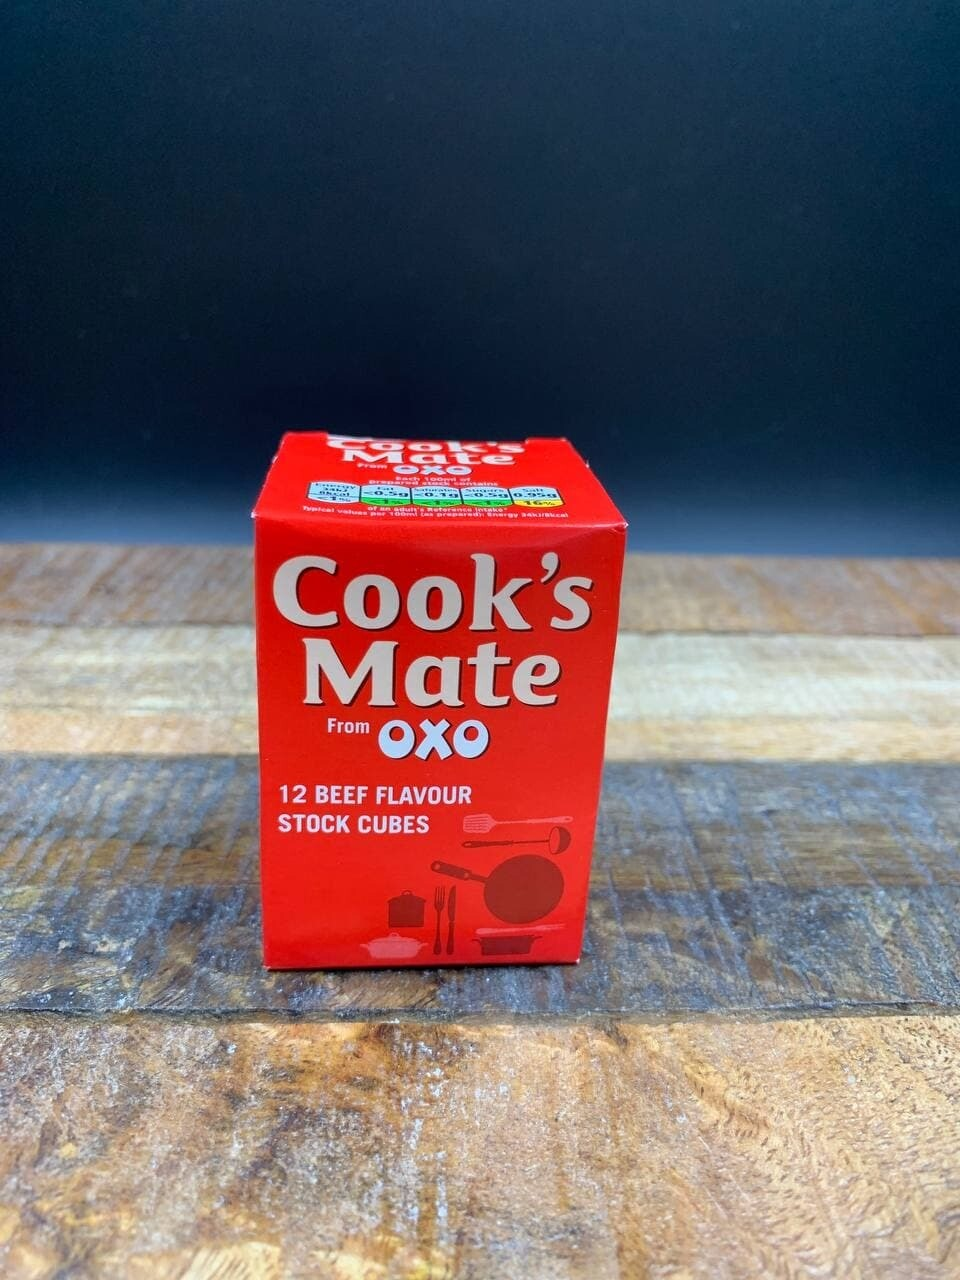 Cook's Mate From OXO 12 Beef Flavour Stock Cubes 71g